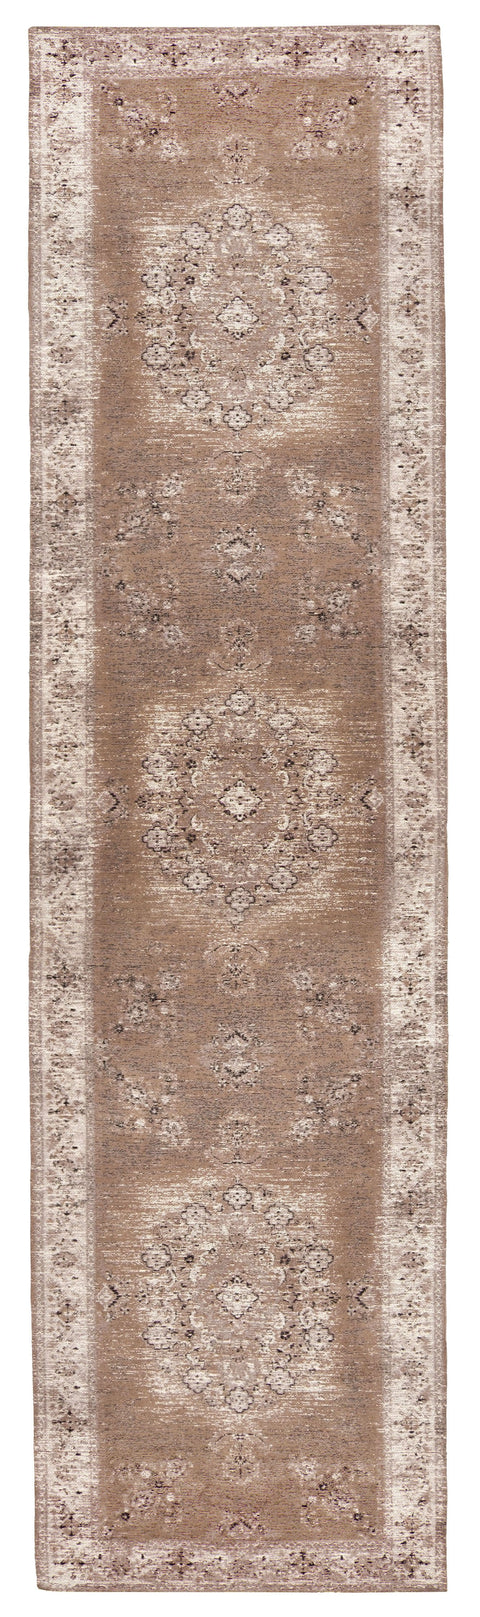 Olive Caramel Brown Traditional Medallion Runner Rug